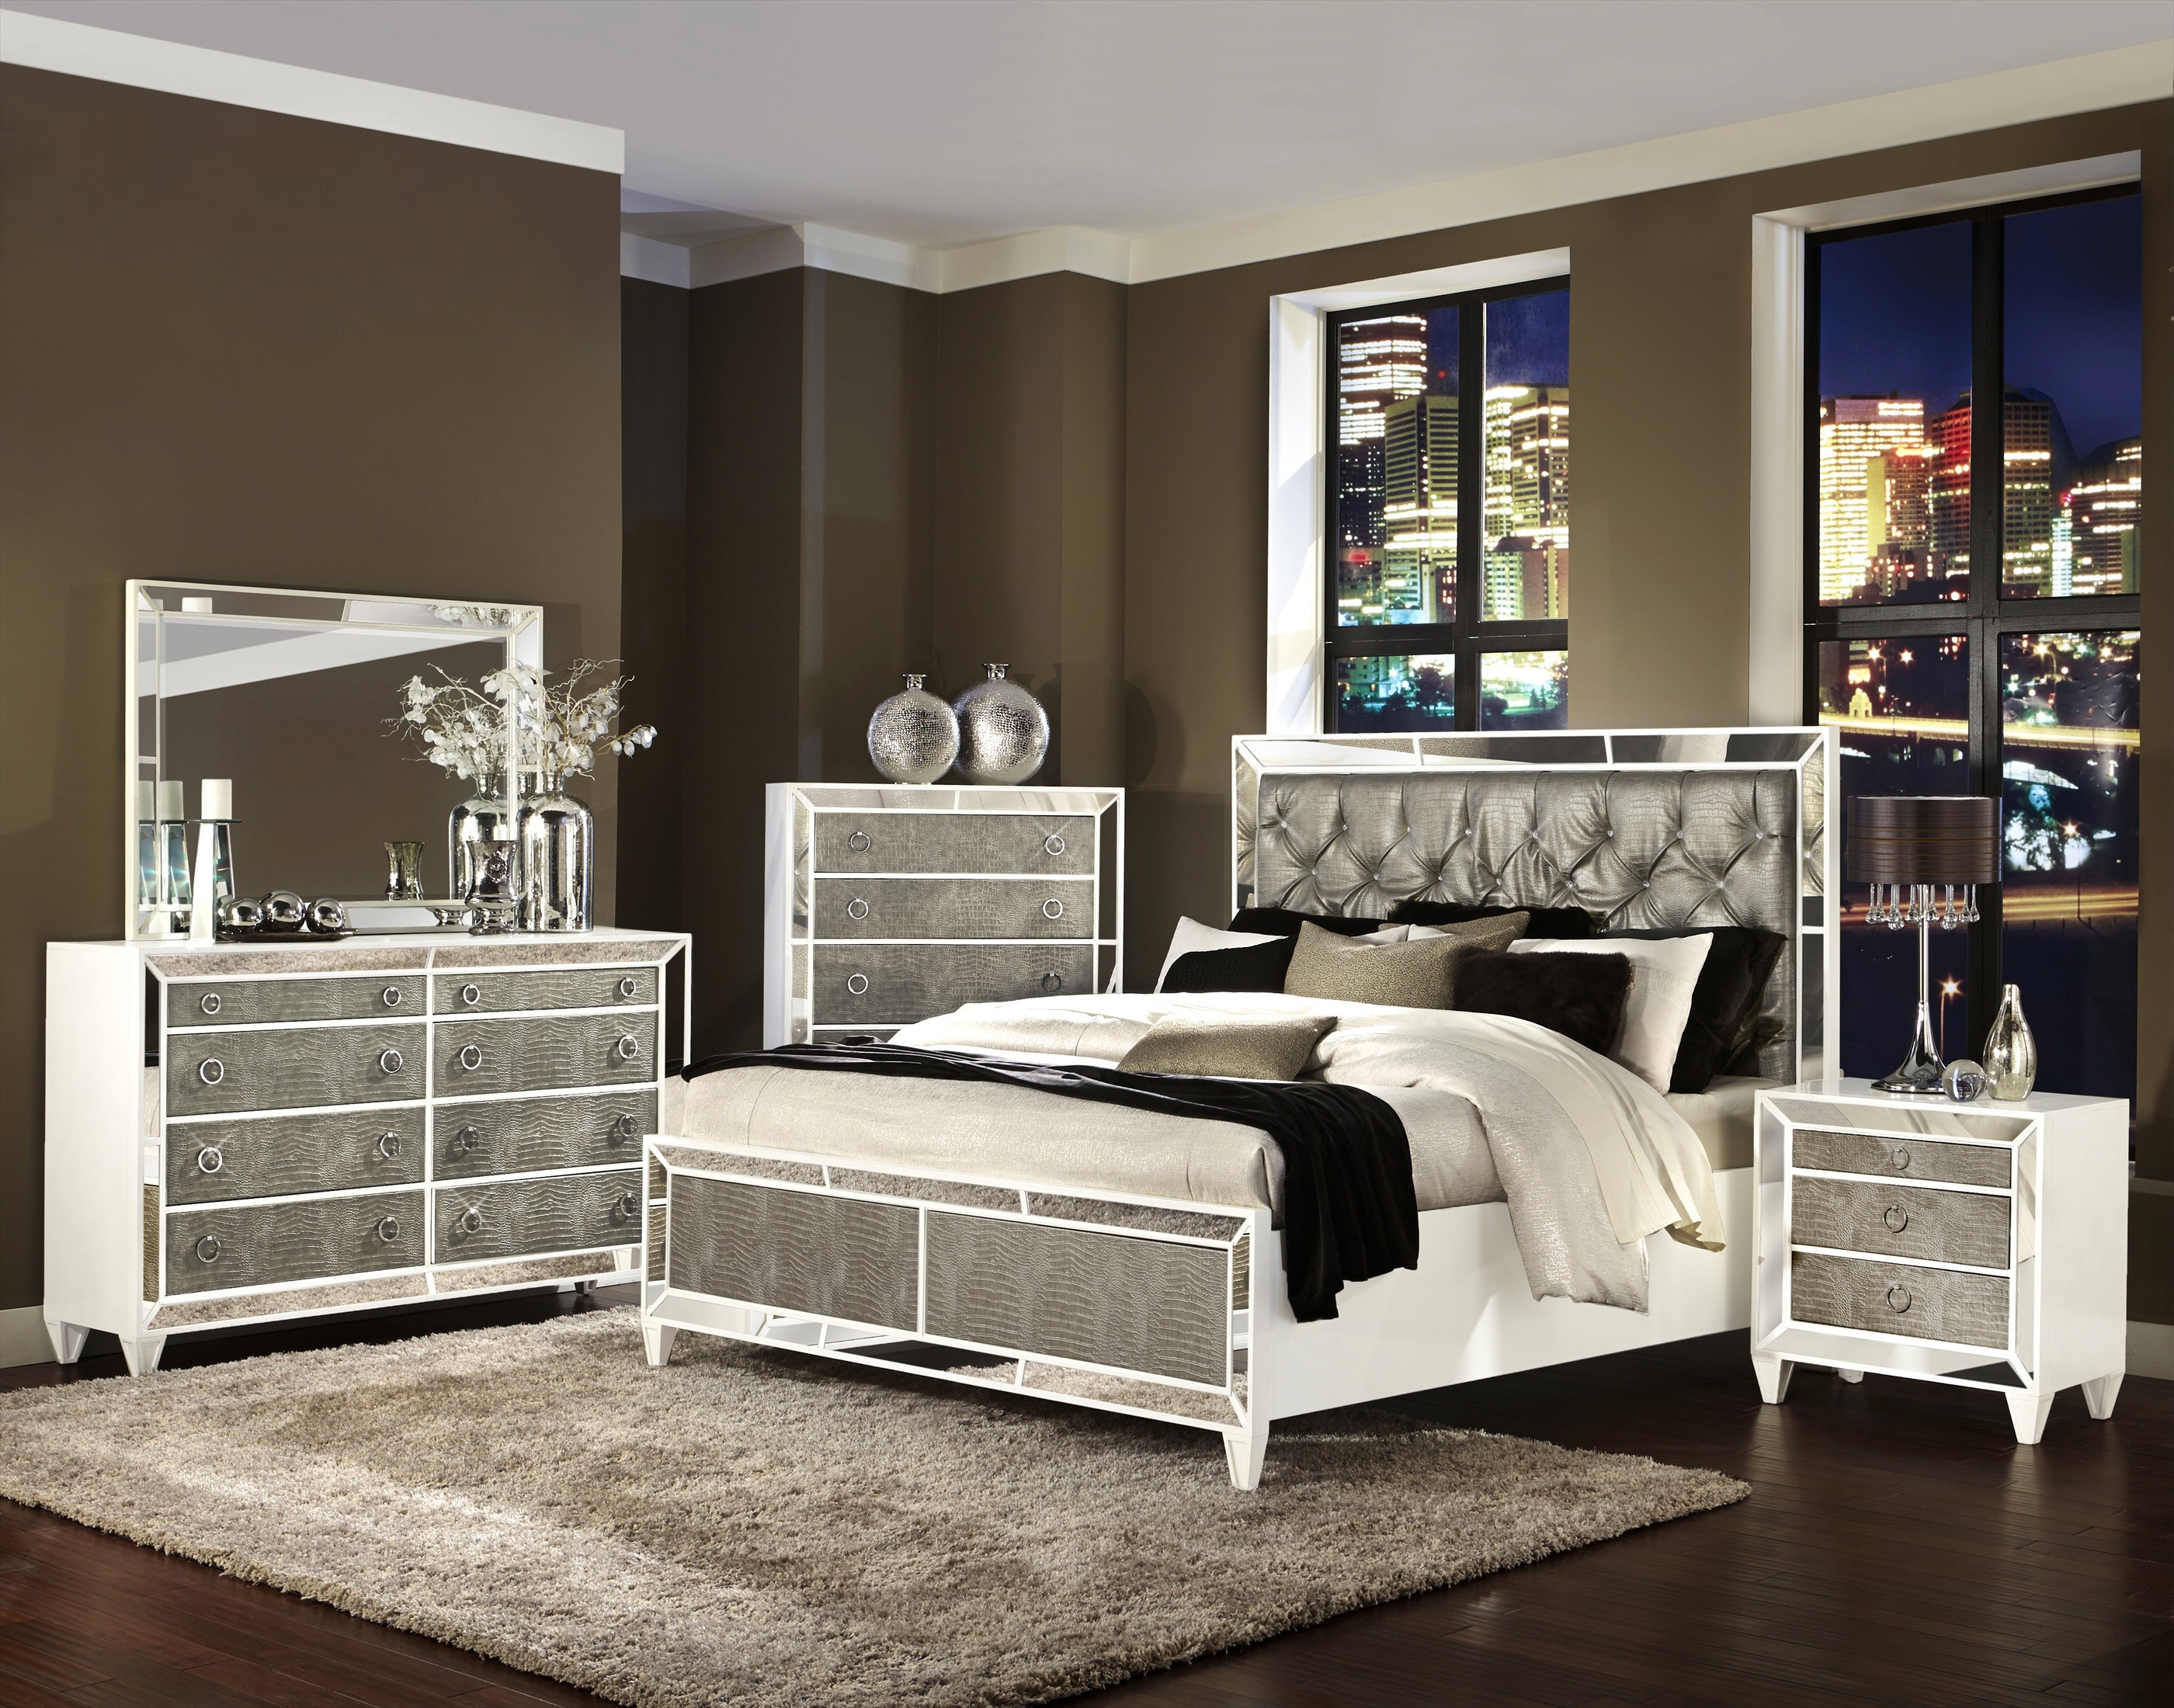 Elegant mirrored bedroom furniture ... lately transitional pearlized white u0026 mirrored bedroom bedroom ||  bedroom || nbbxiyv